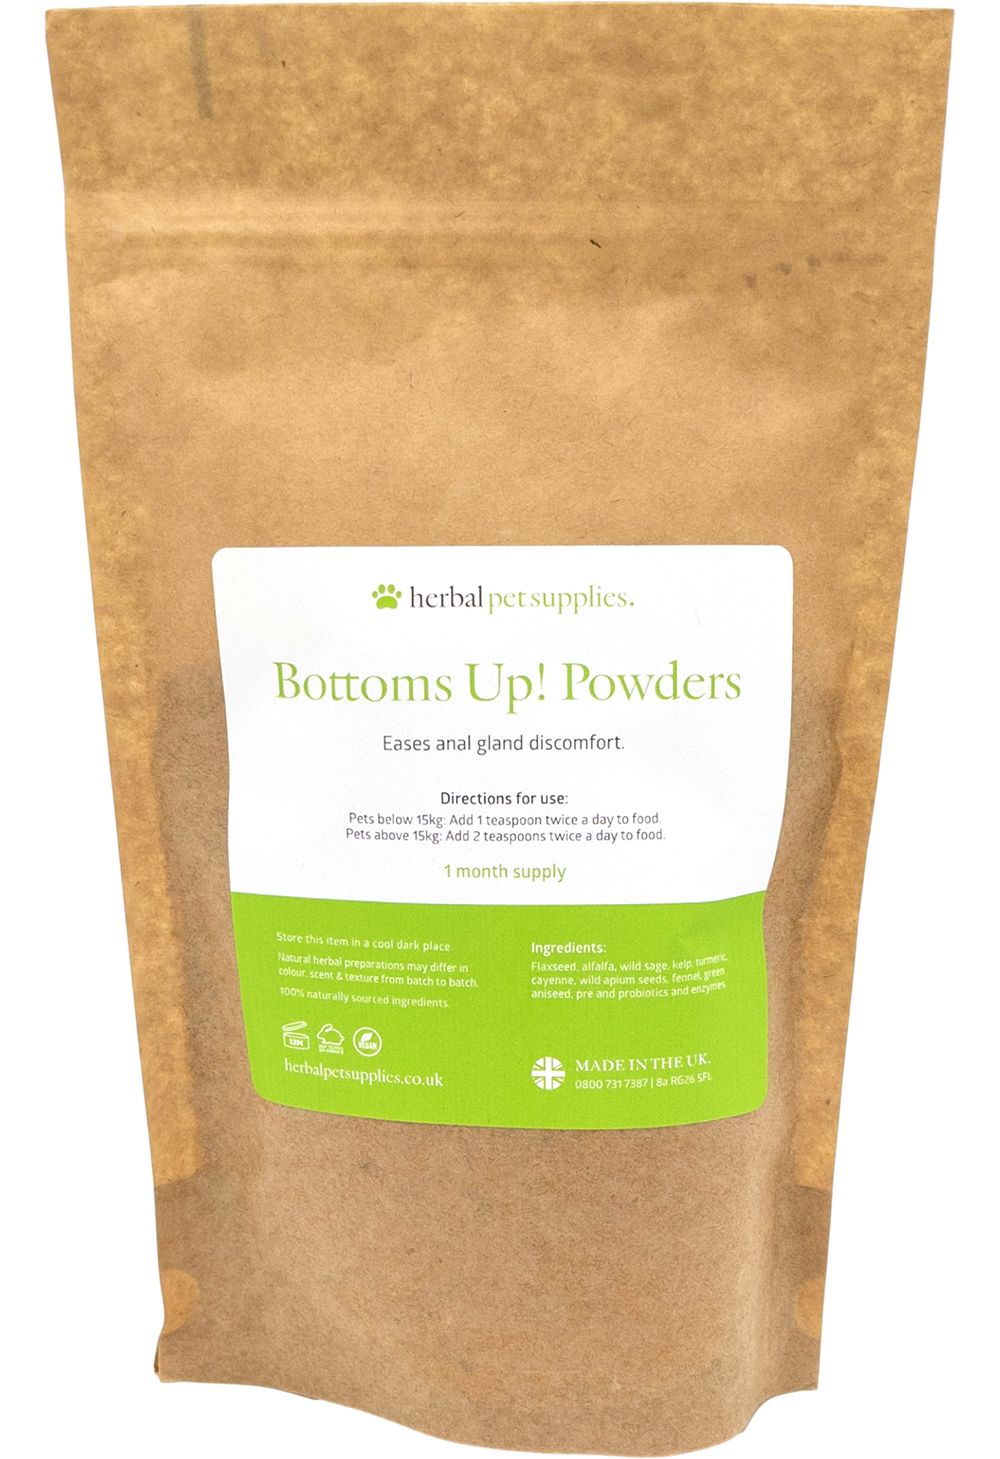 Bottoms Up! Powders